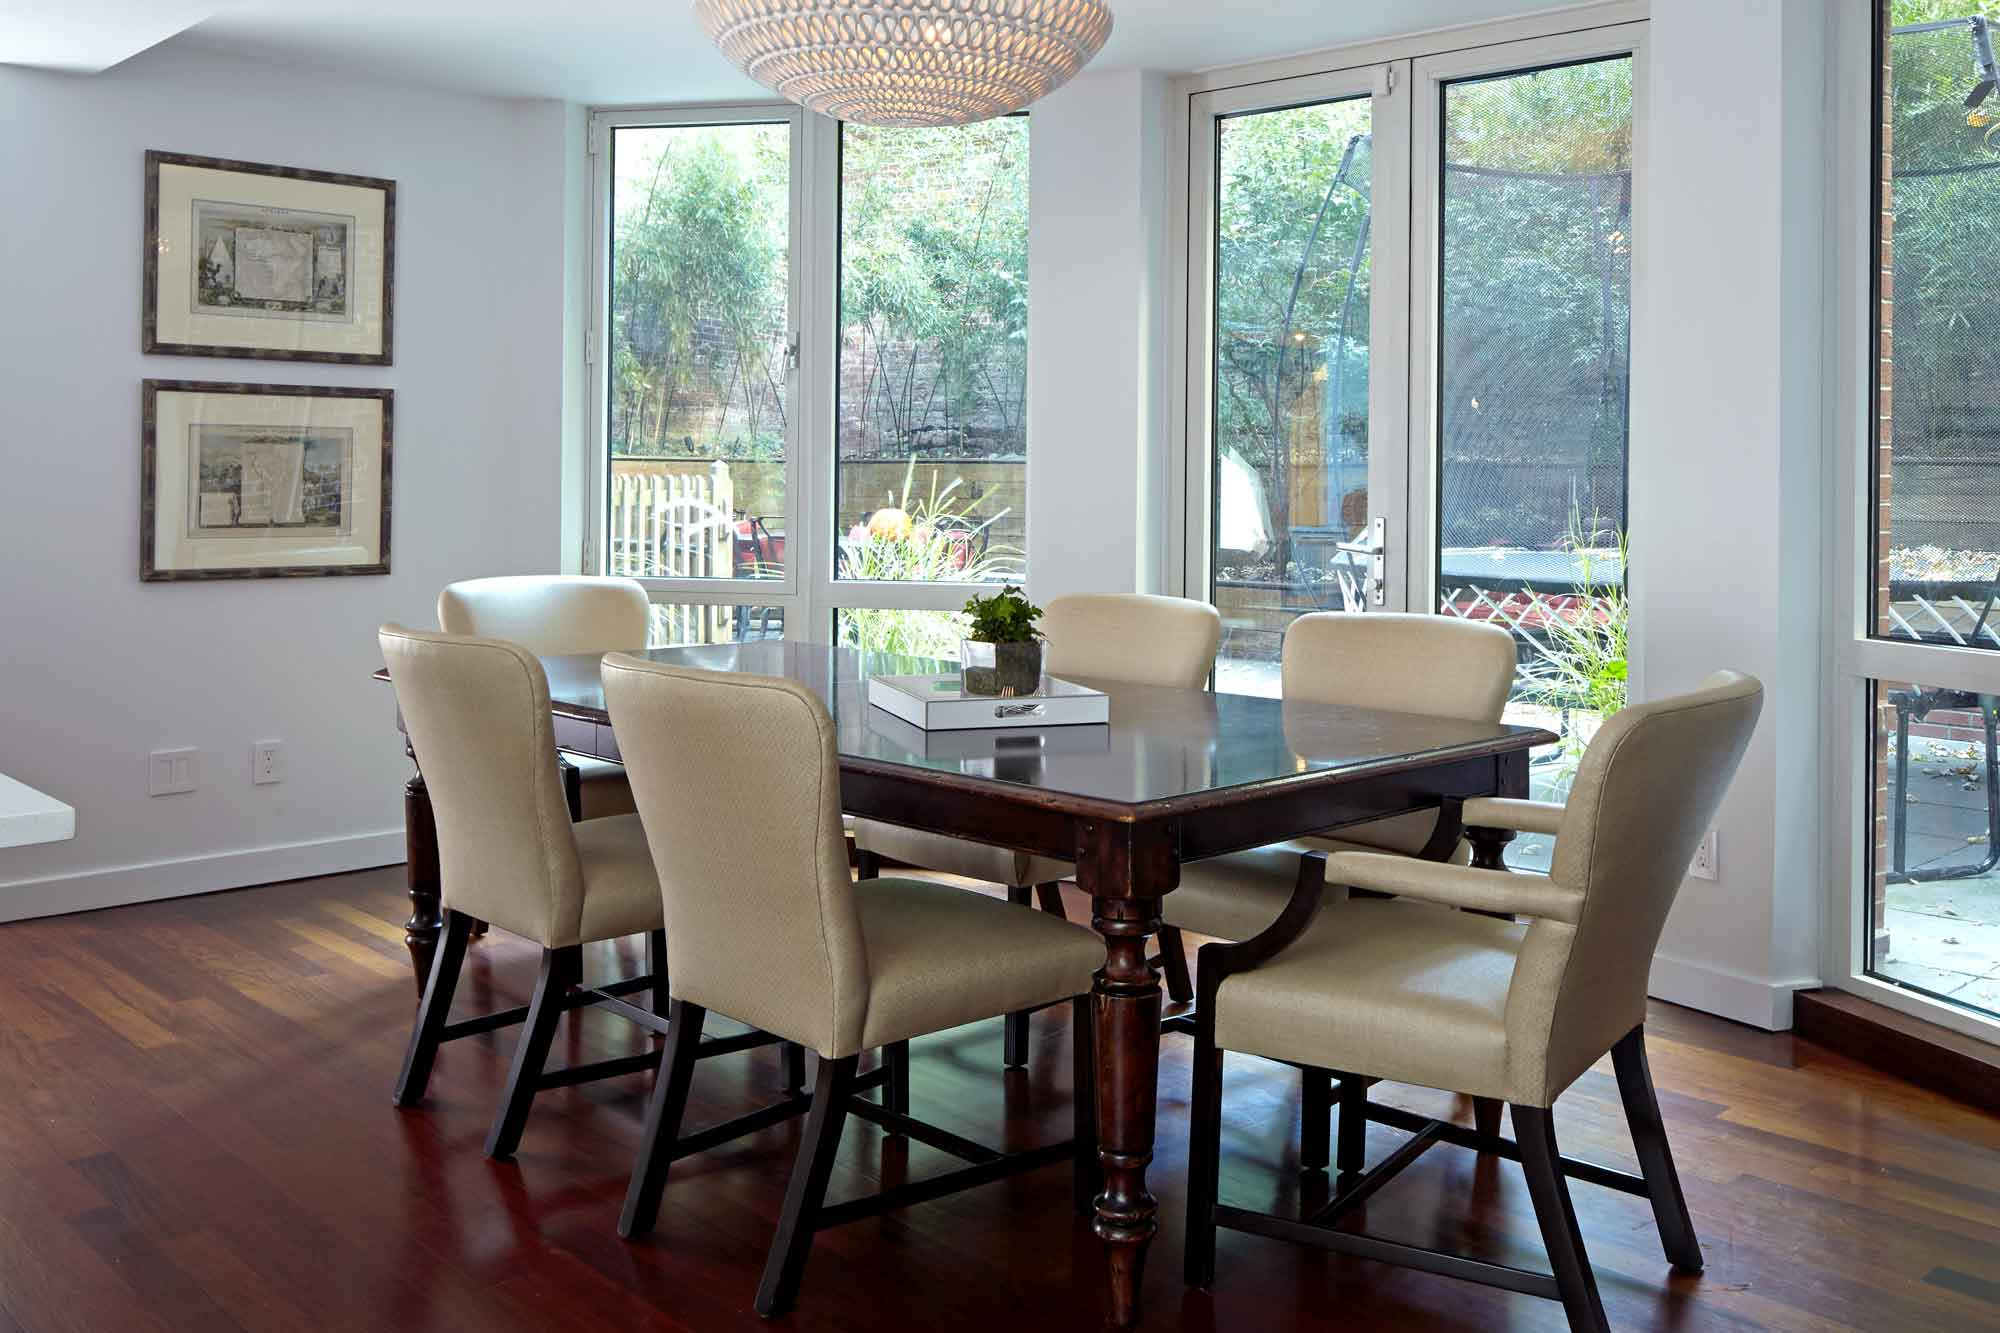 brooke moorhead design west village family comfort dining room